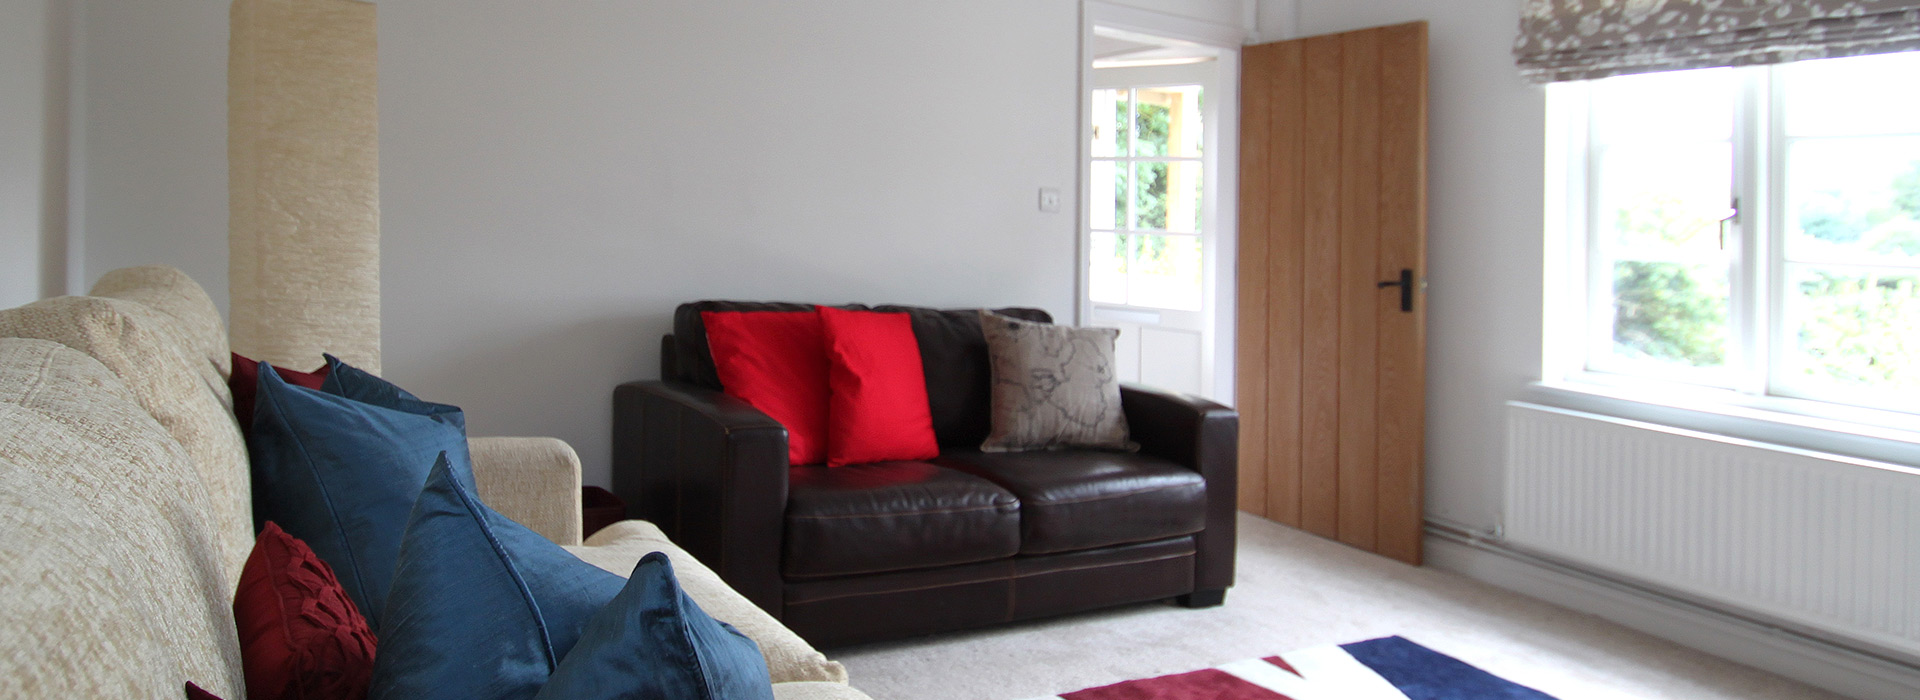 Relaxed home with comfy sofa